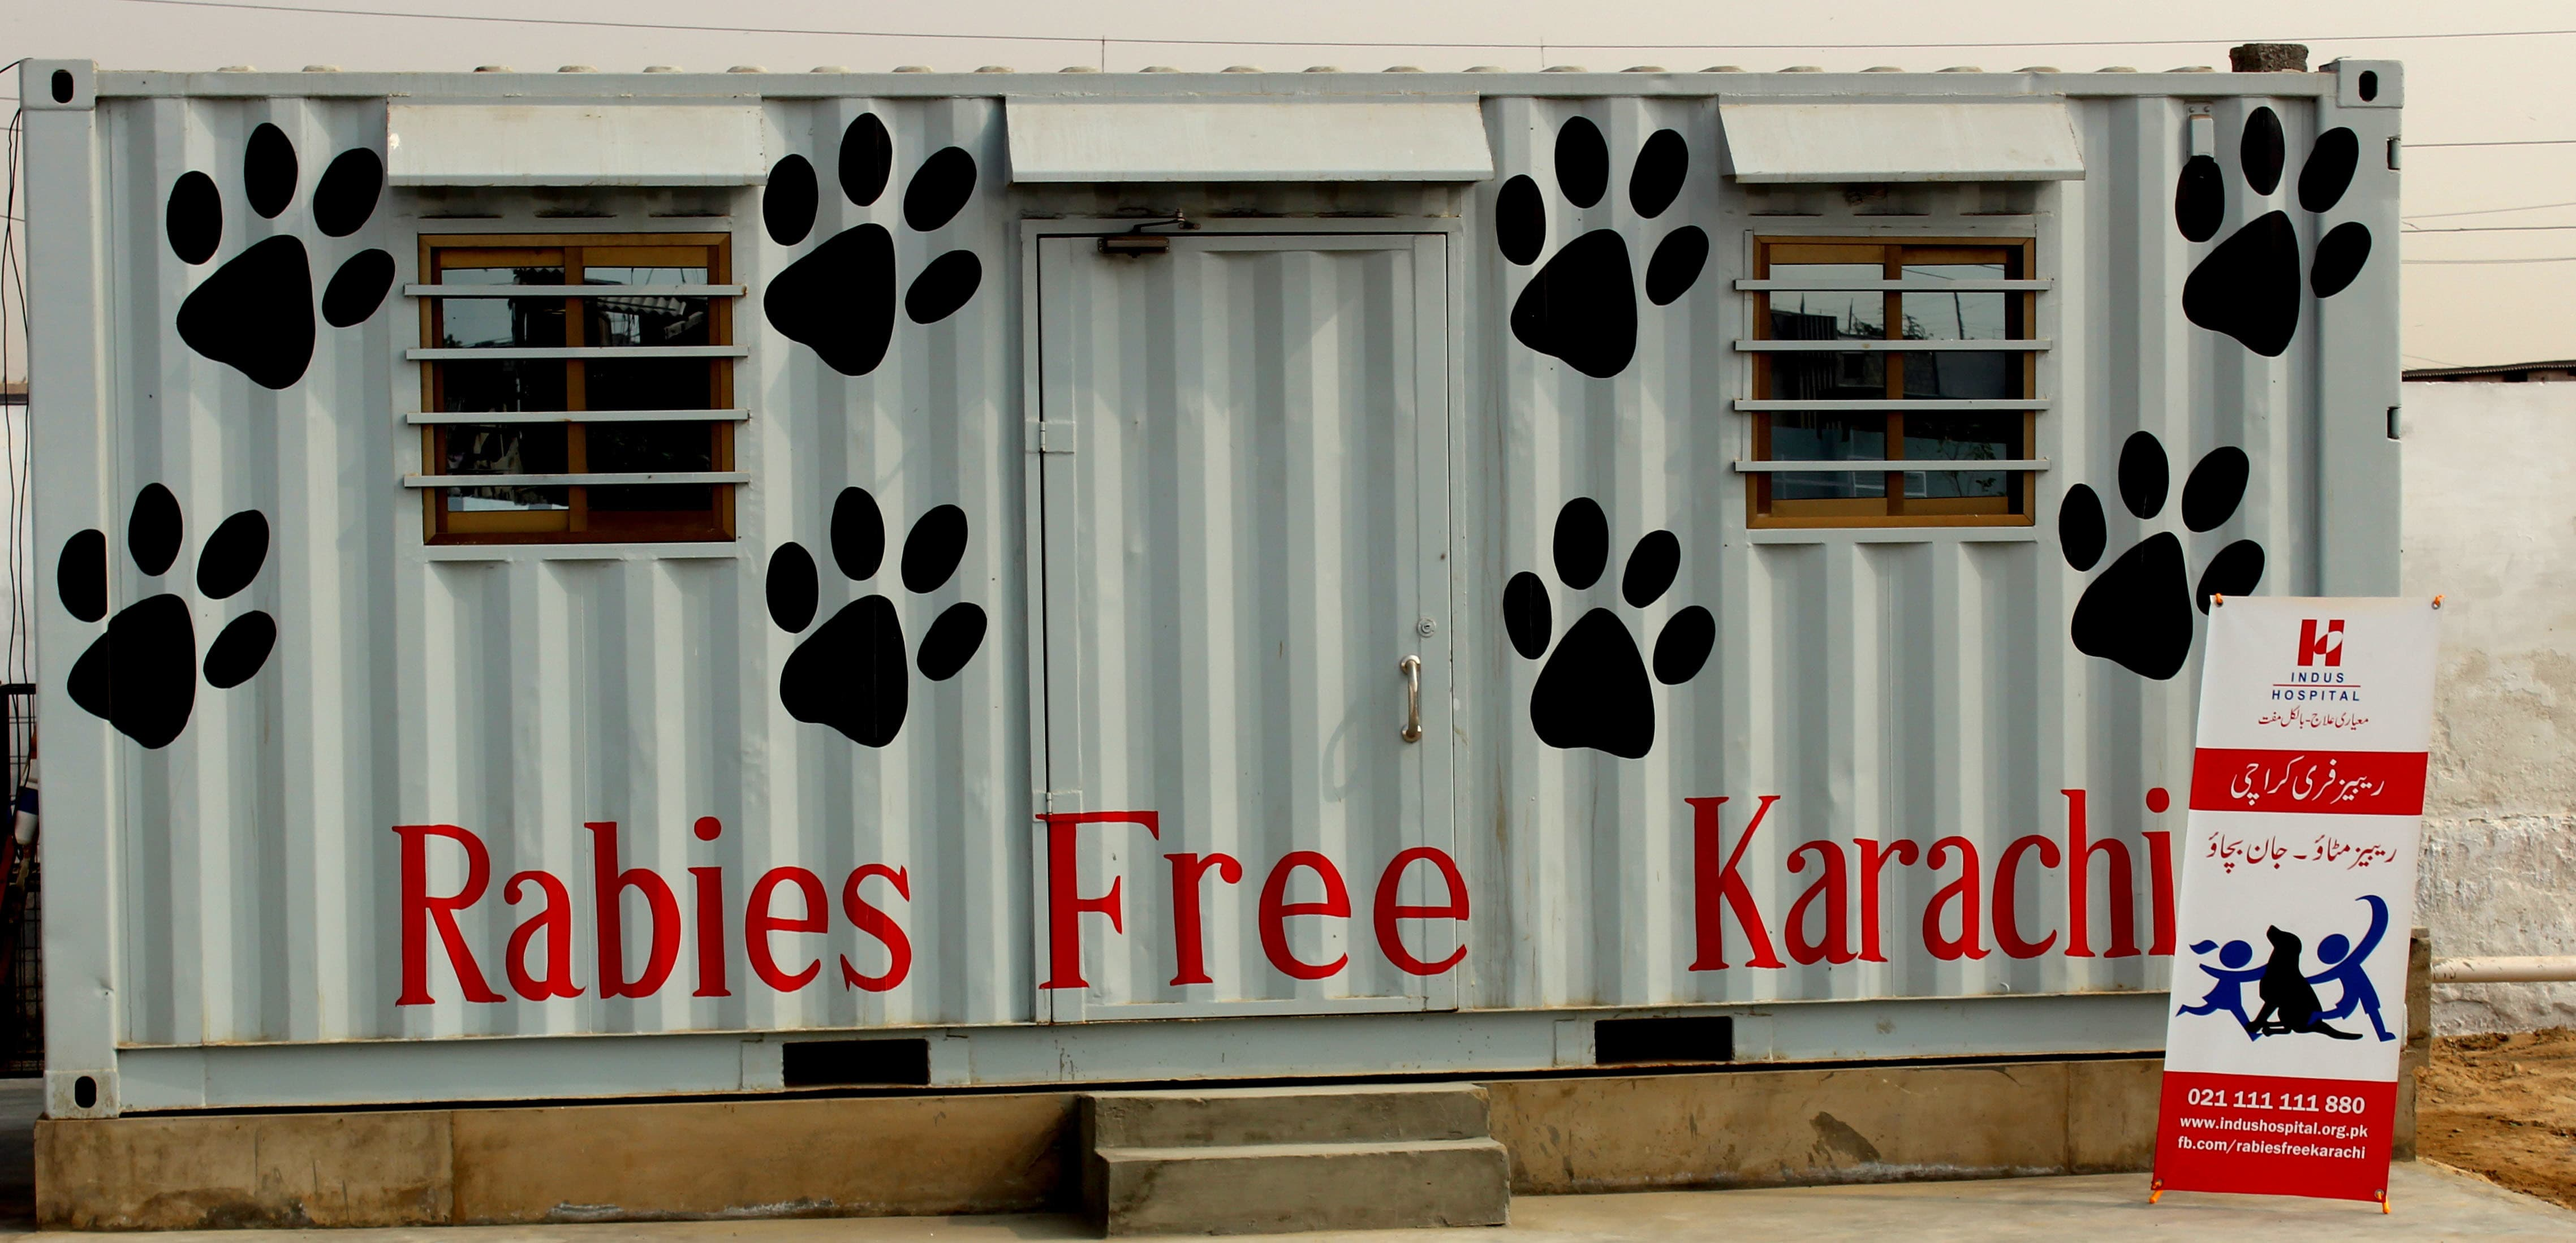 RFK surgical container for spaying and neutering stray dogs in Korangi Industrial Area.—*Courtesy TIH*